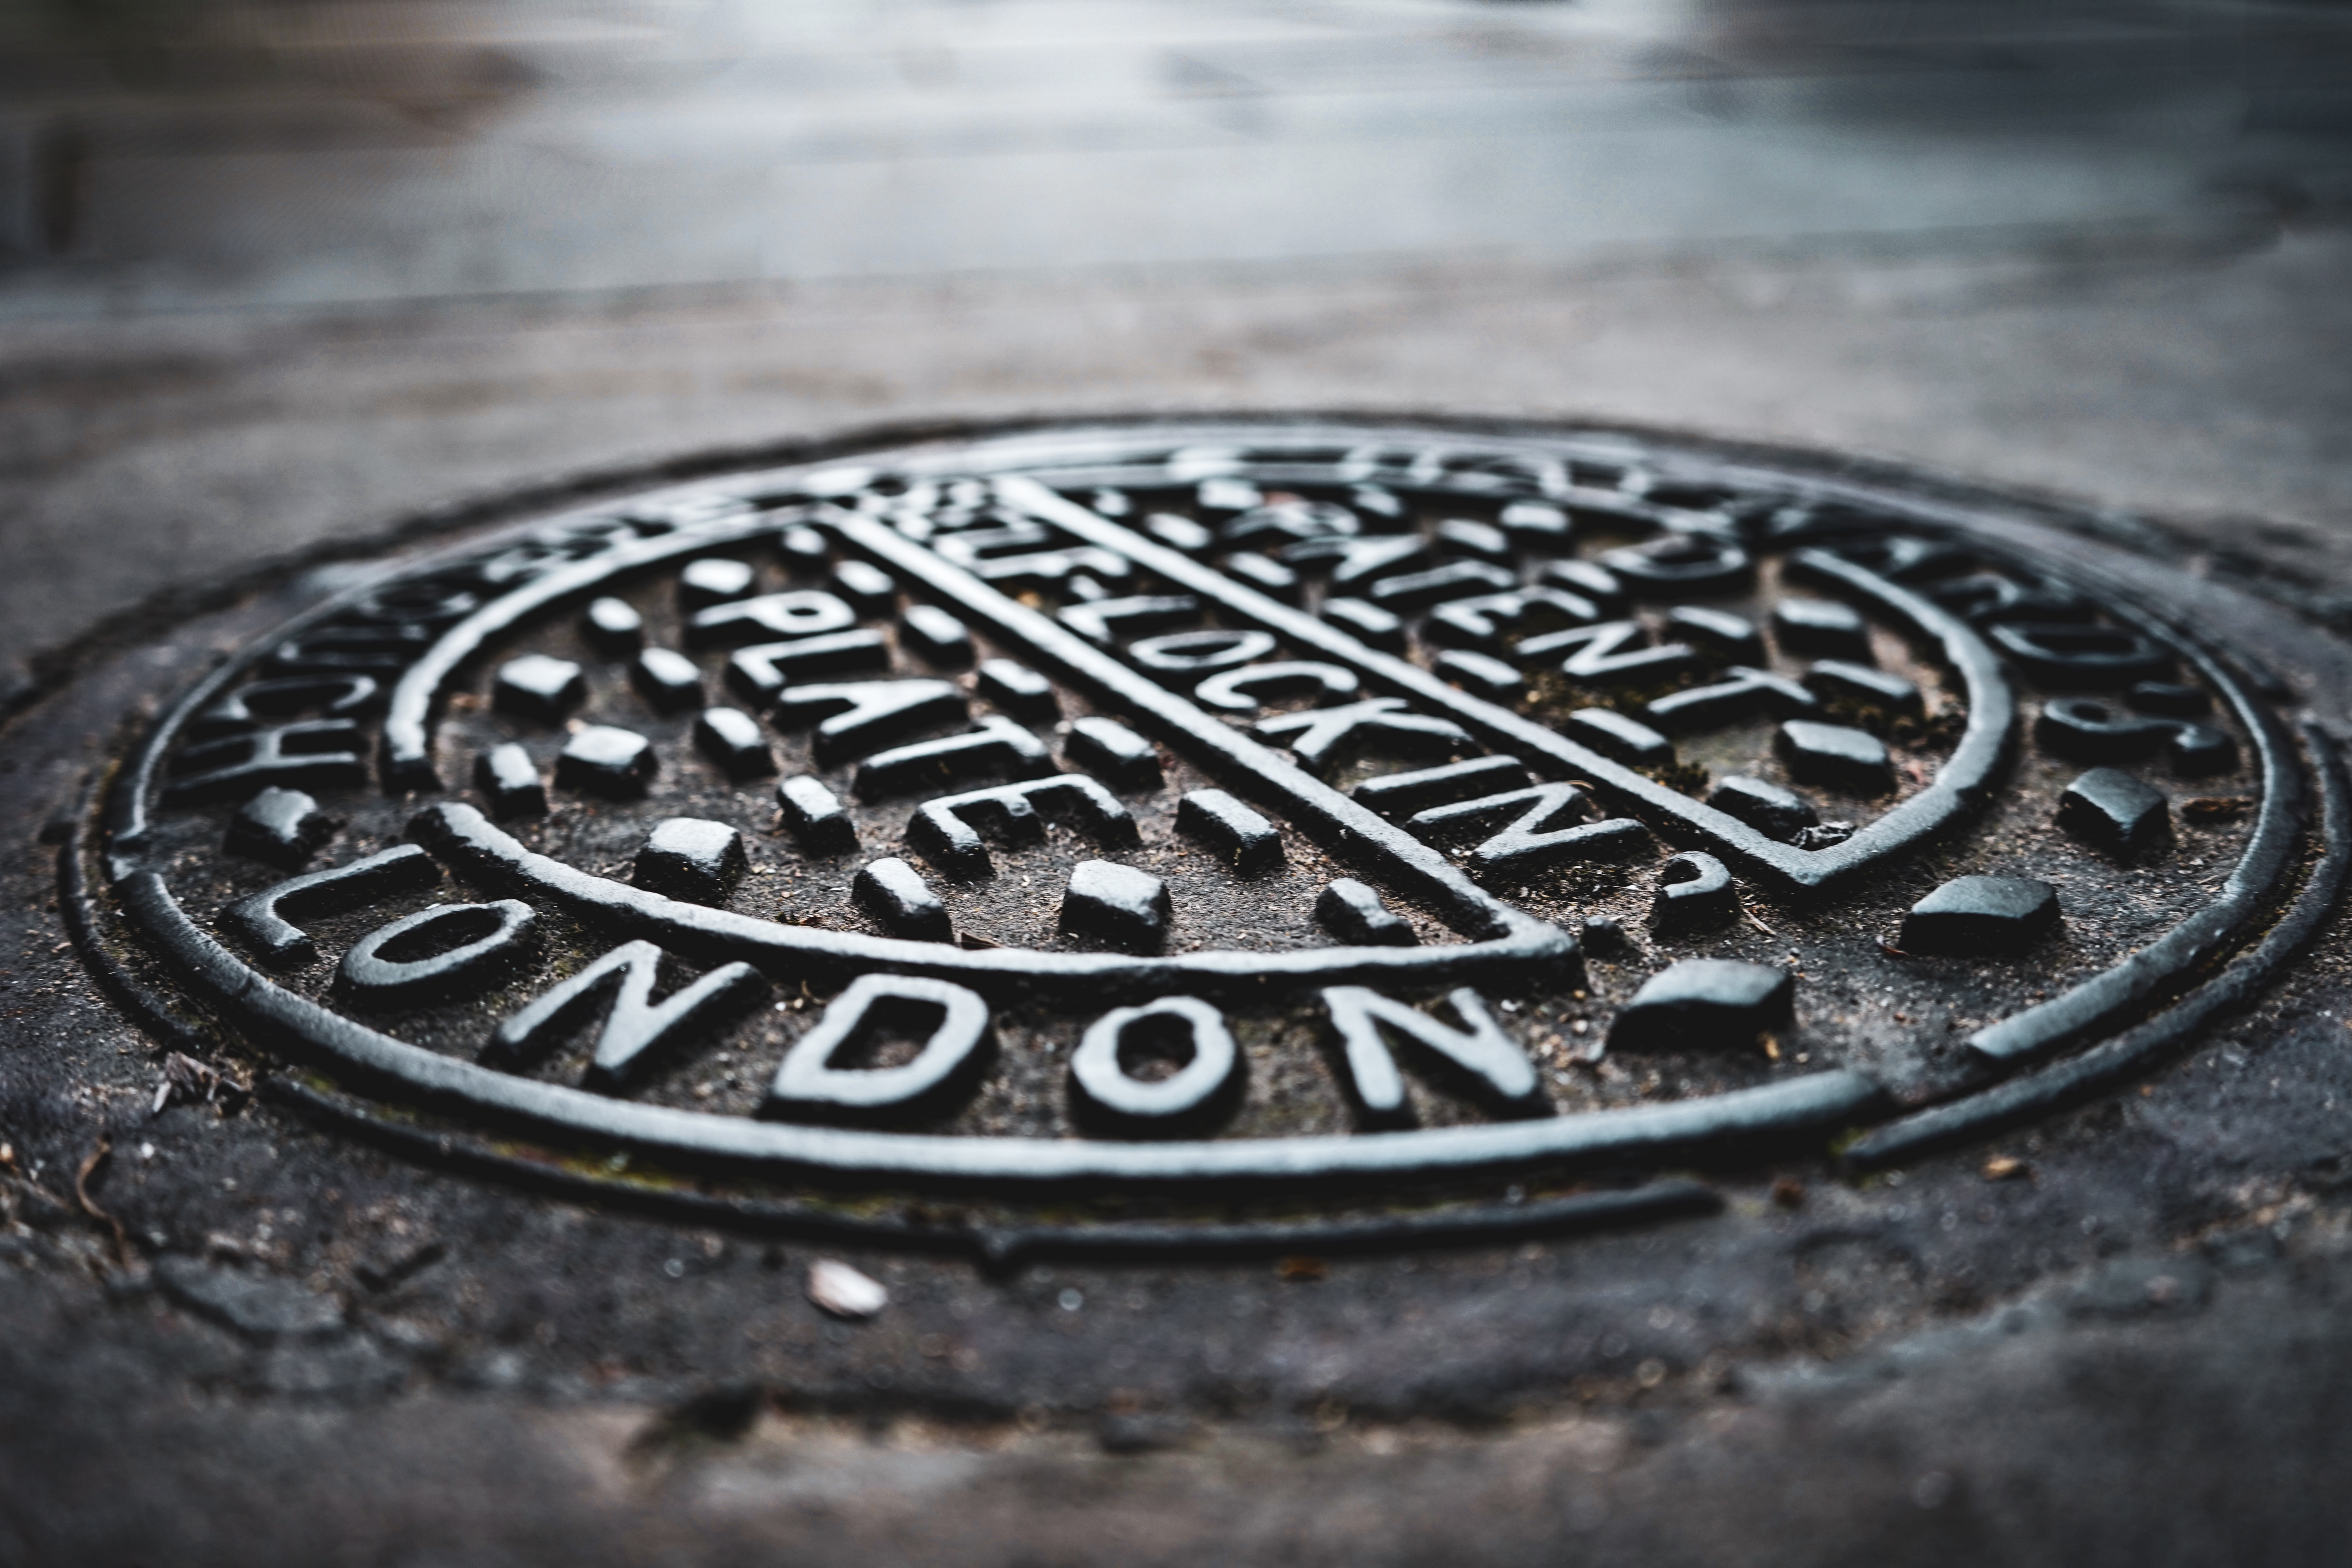 Manhole Cover of London Drains